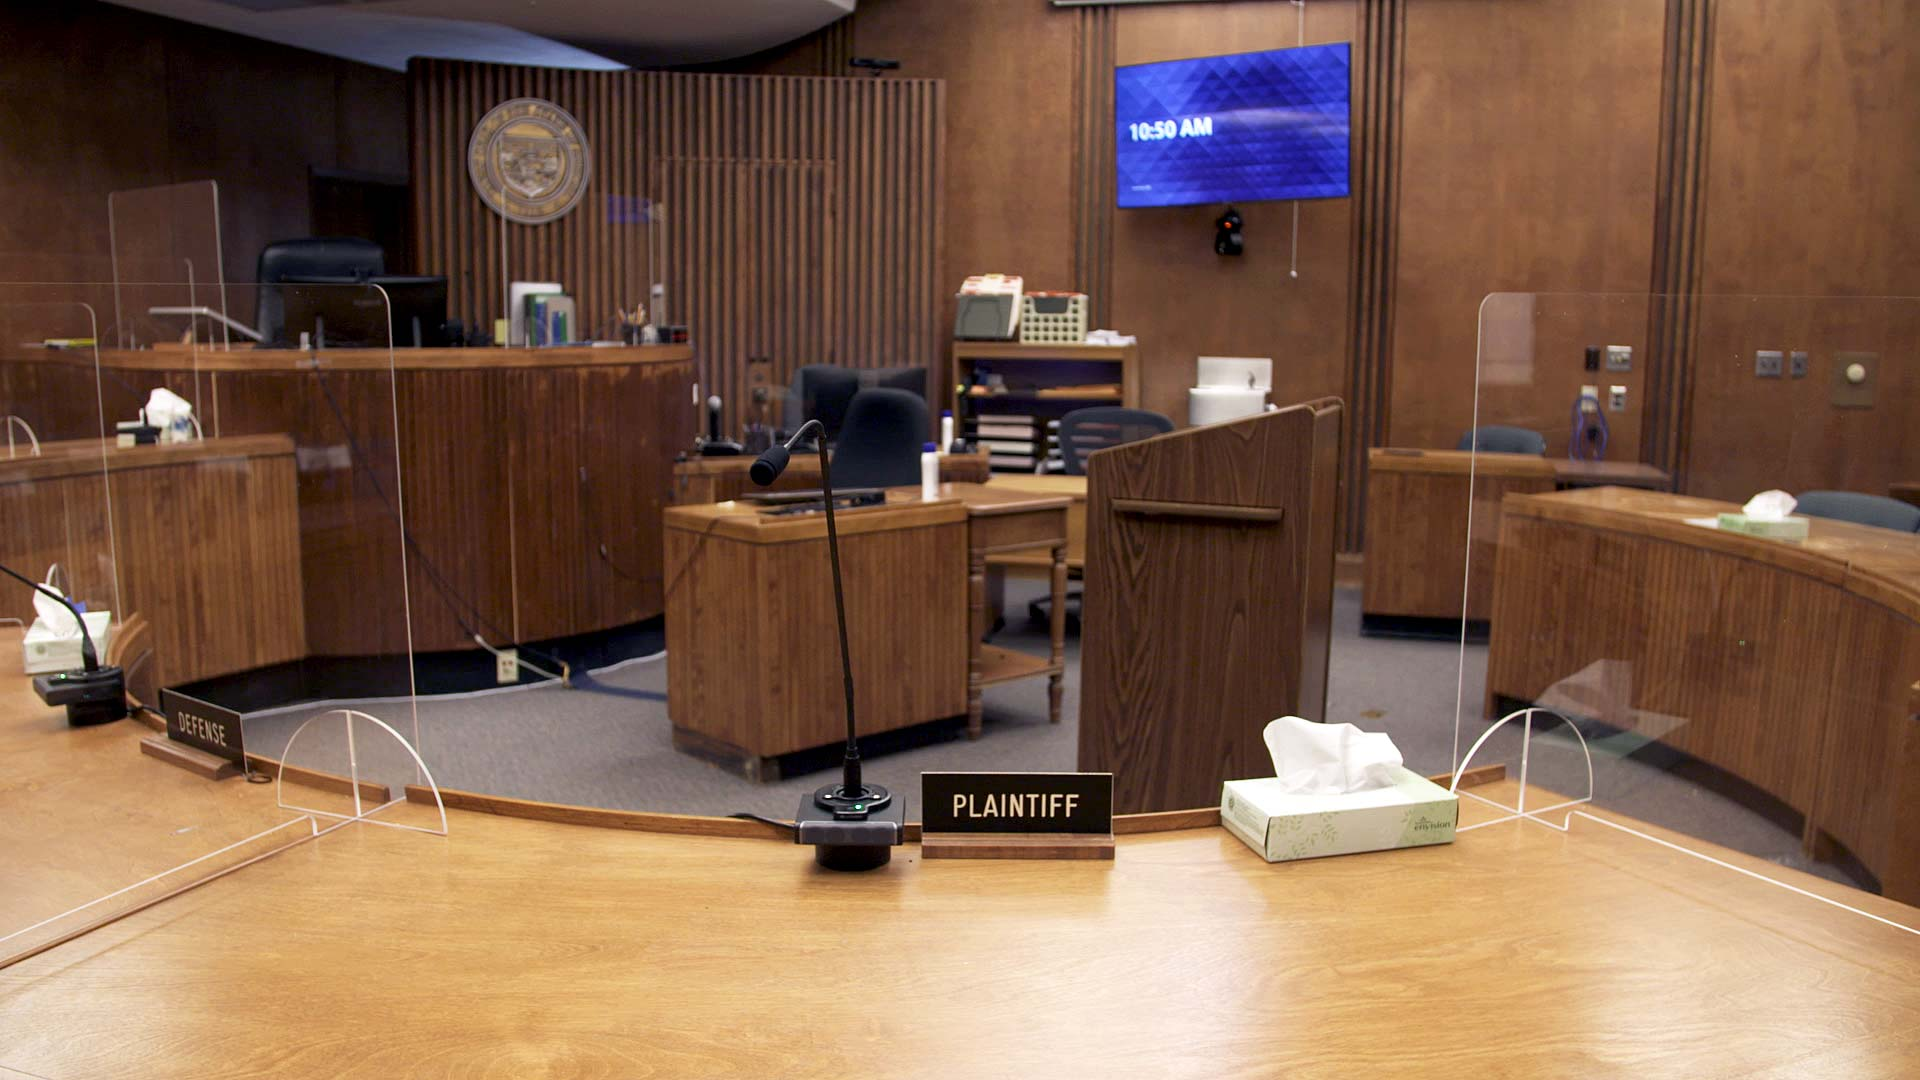 Plexiglass dividers are set up throughout a courtroom at the Pima County Superior Court as part of the building's COVID-19 mitigation protocols. April 2021.